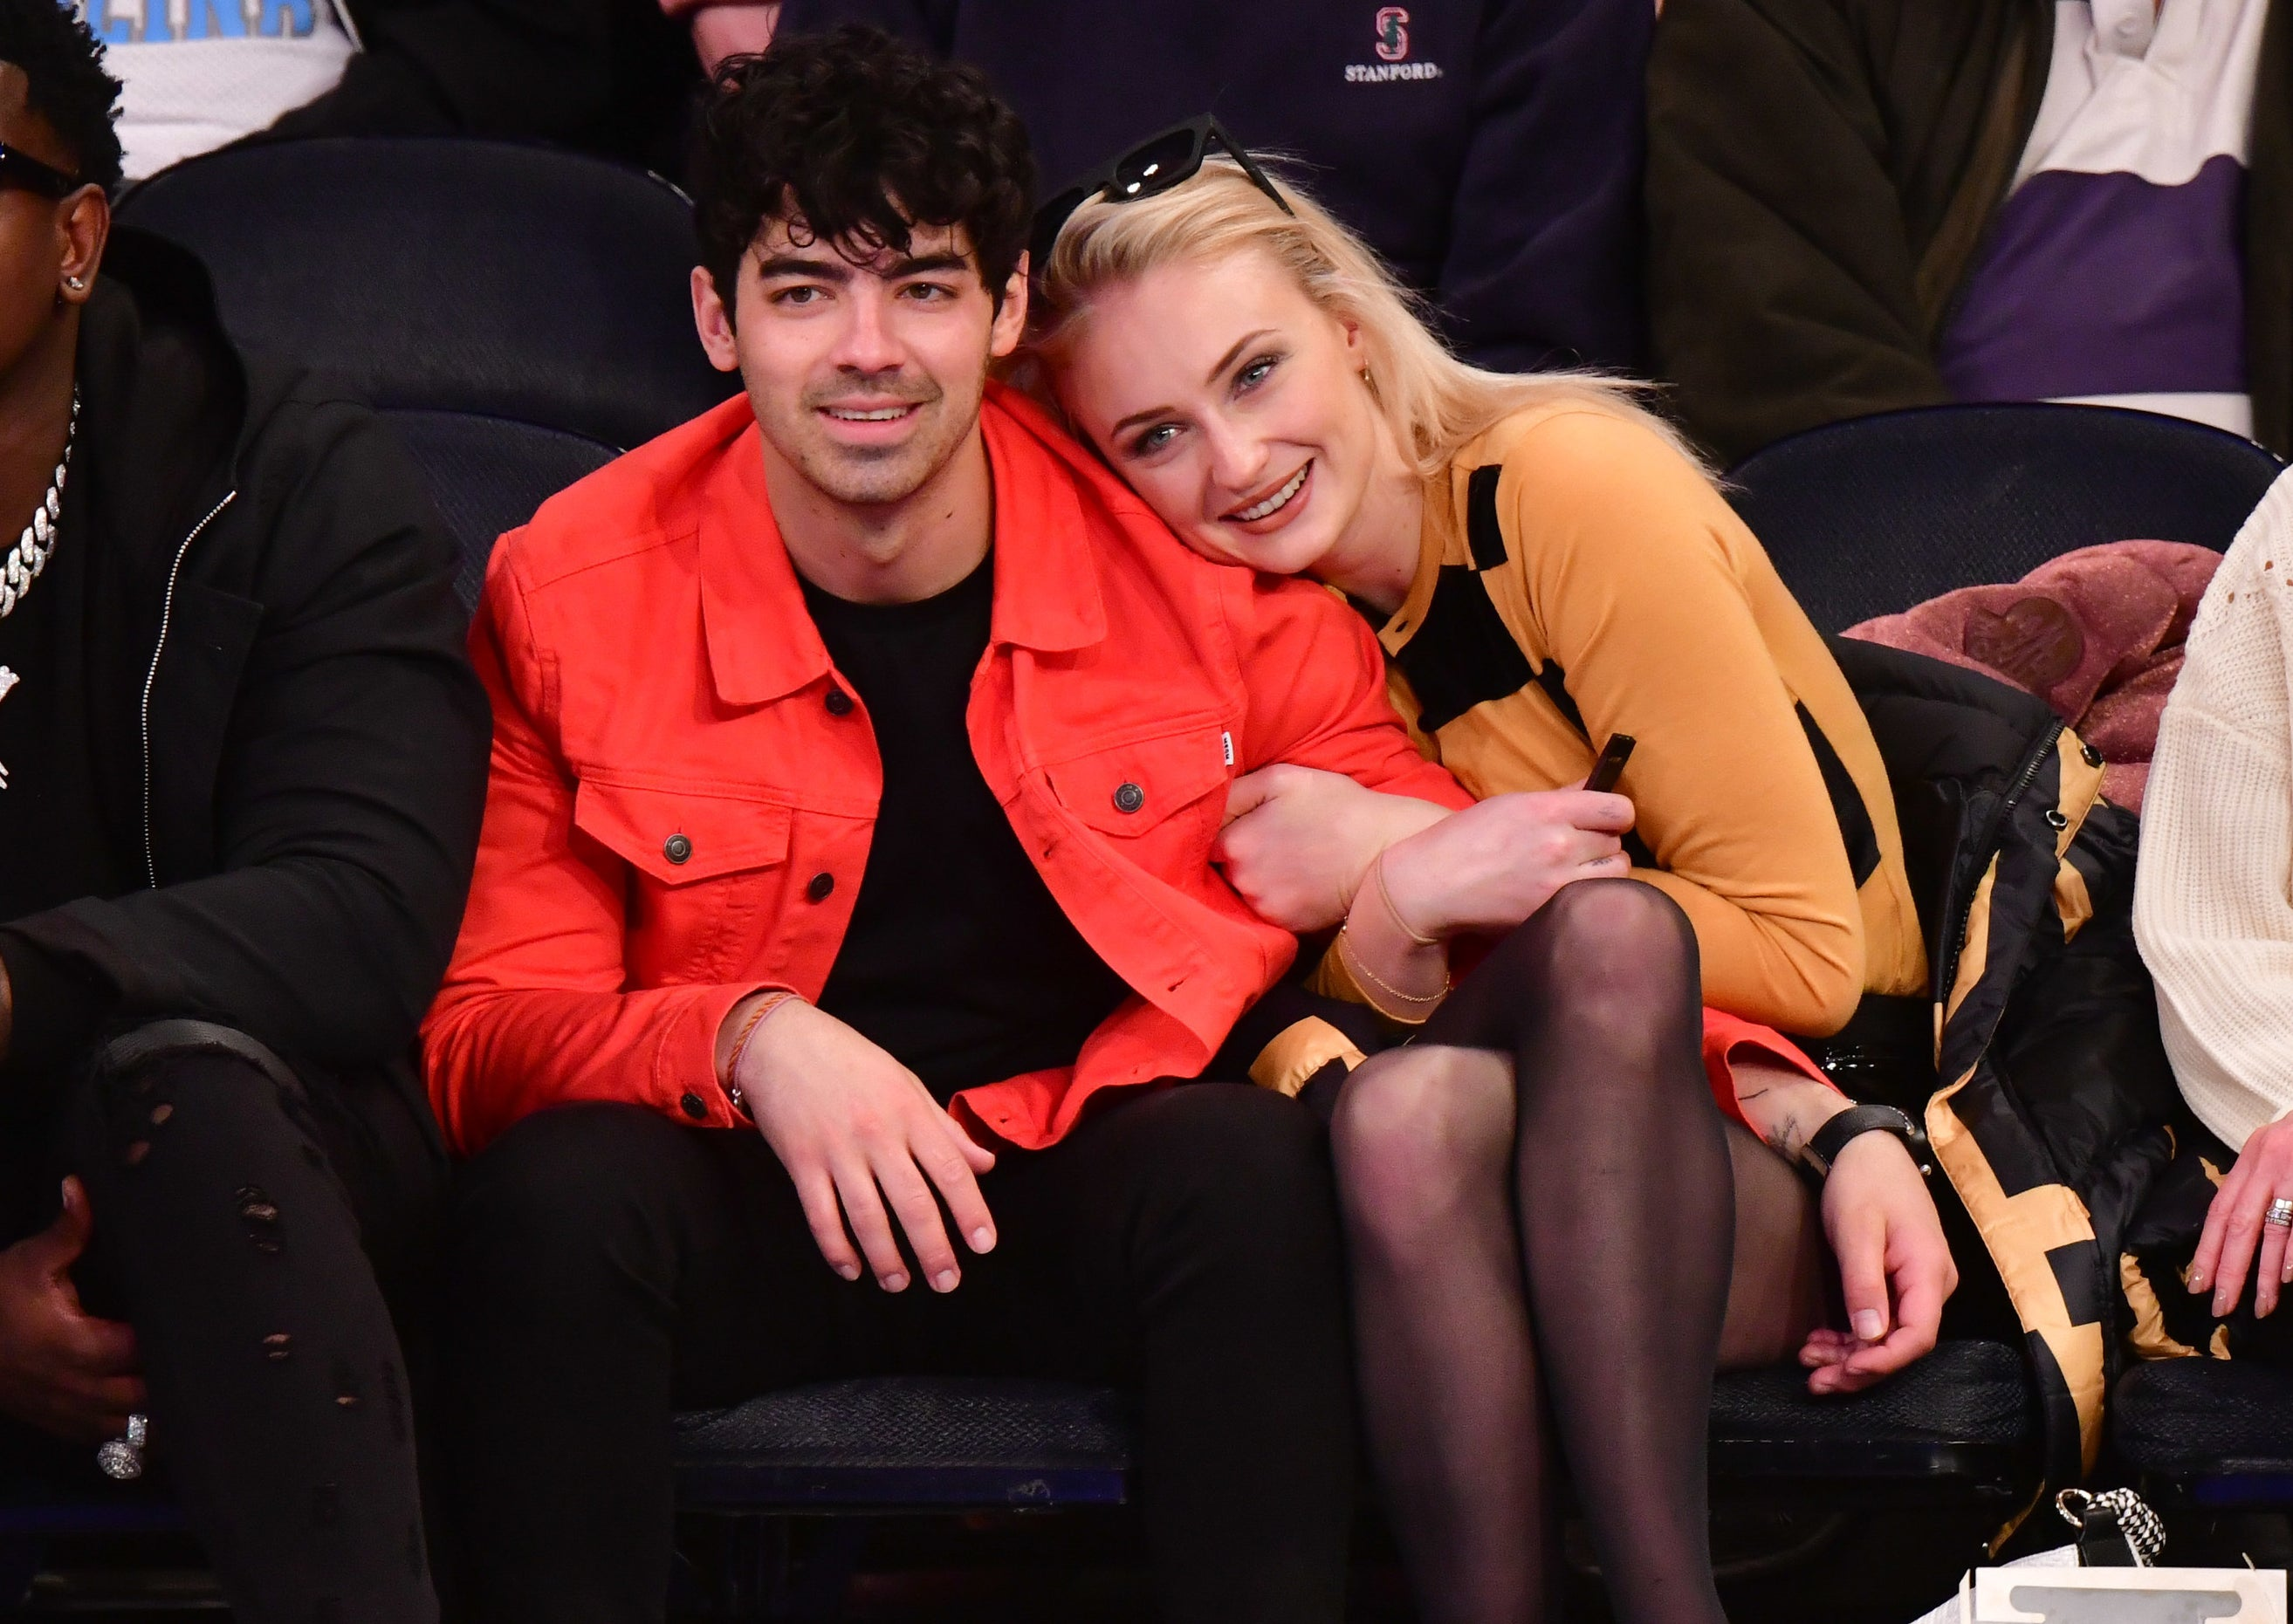 Sophie cuddles up to Joe while sitting at an event